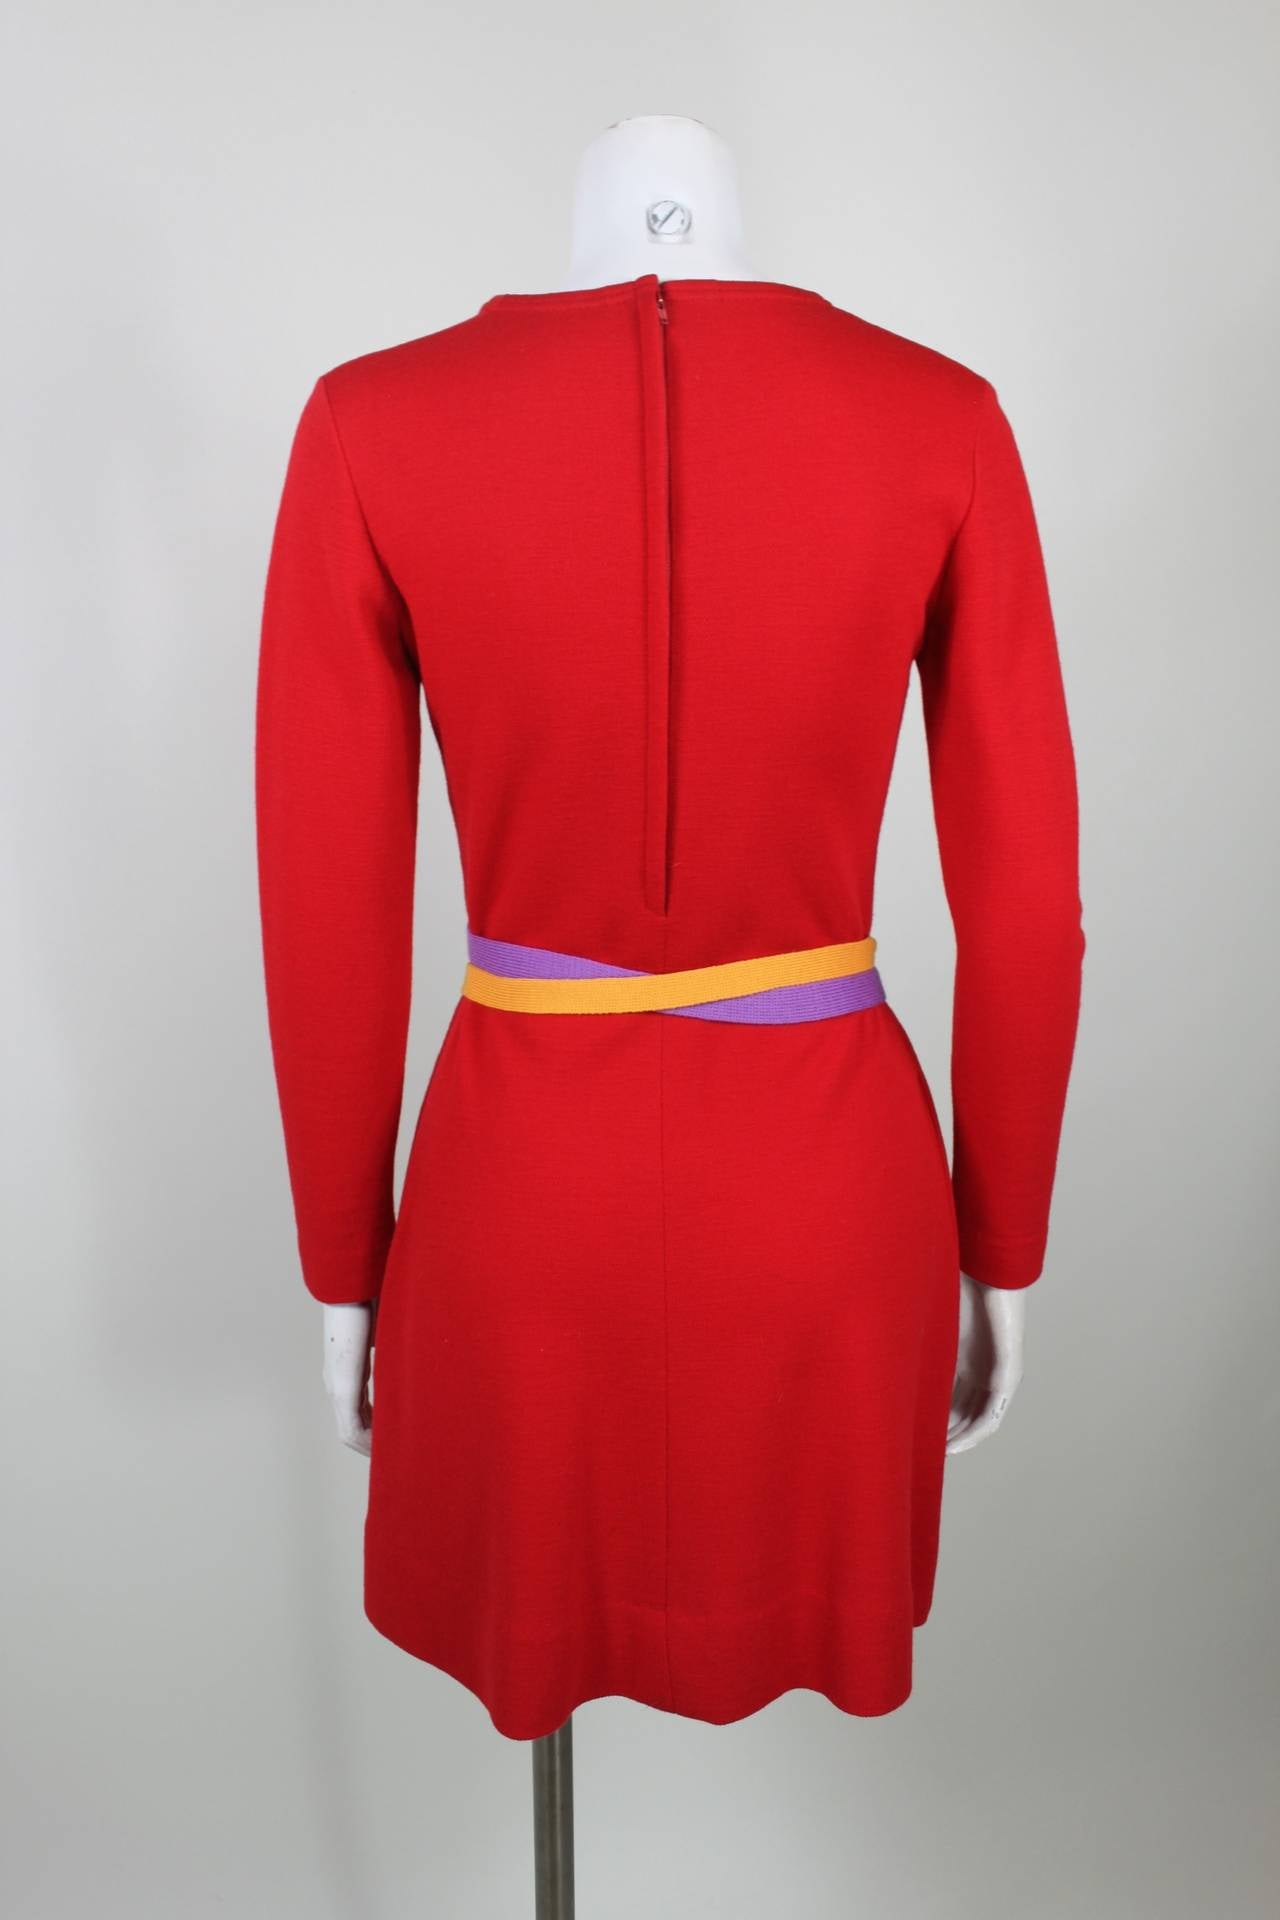 Rudi Gernreich 1960s Vibrant Red Wool Mini Dress with Purple and Yellow Belt 5